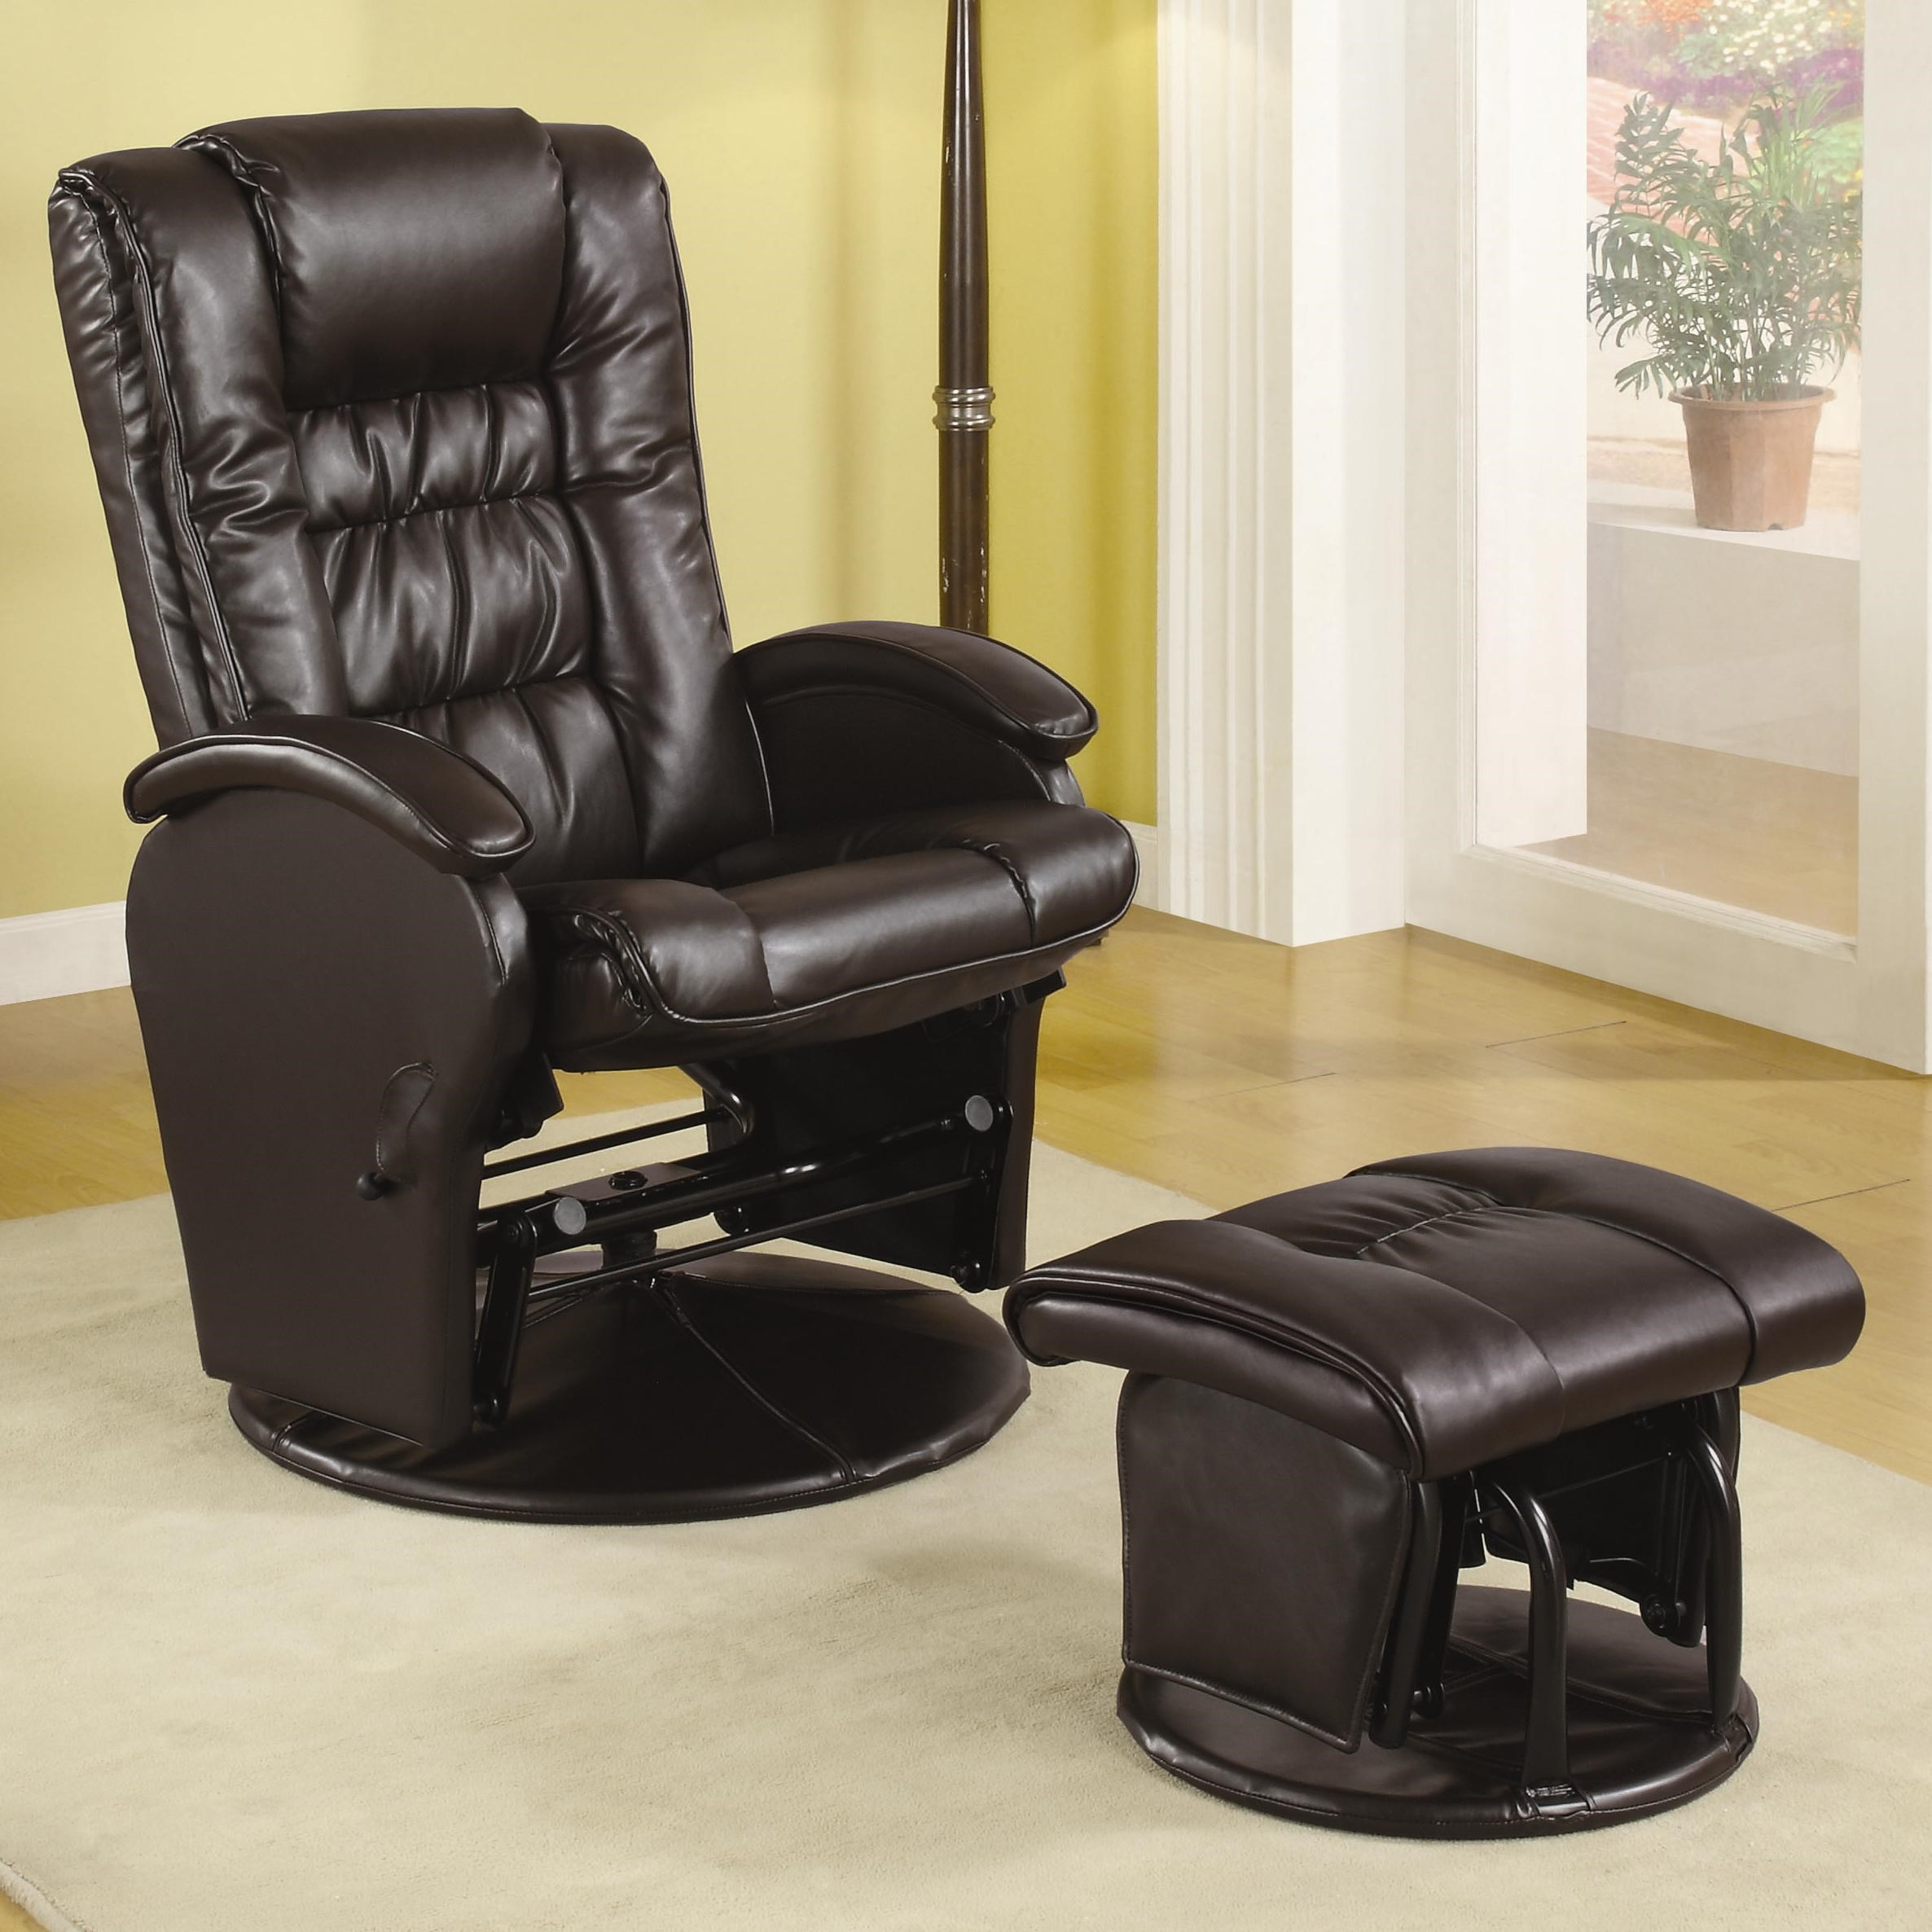 Merveilleux Coaster Recliners With OttomansGlider Recliner With Ottoman ...